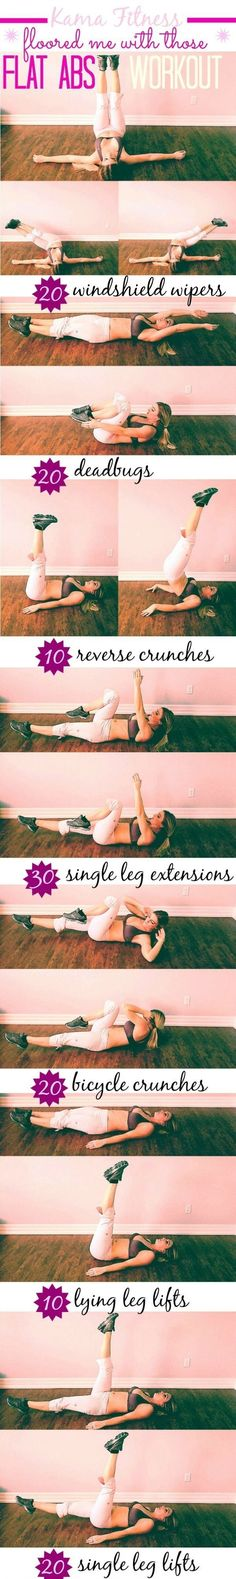 Ab workout you can do from home. #fitness #homeworkout